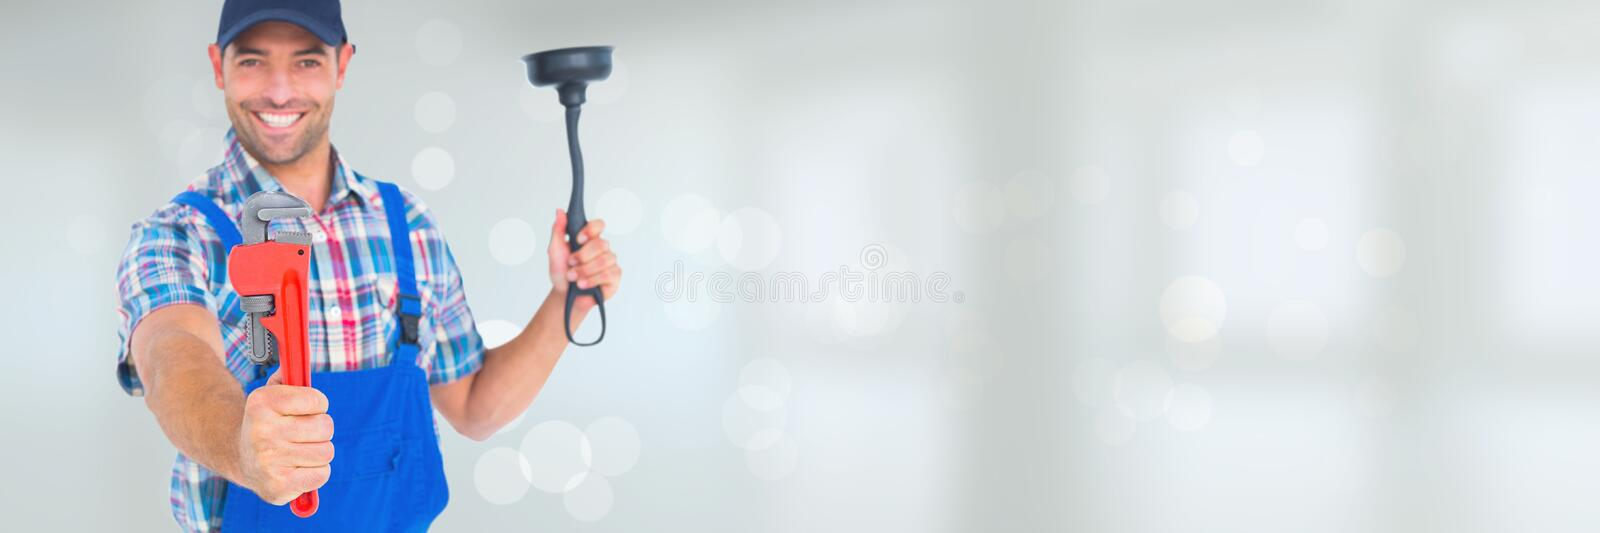 Happy plumber man holding a plunger and a wrench against white background with flares. Digital composite of Happy plumber man holding a plunger and a wrench royalty free stock image